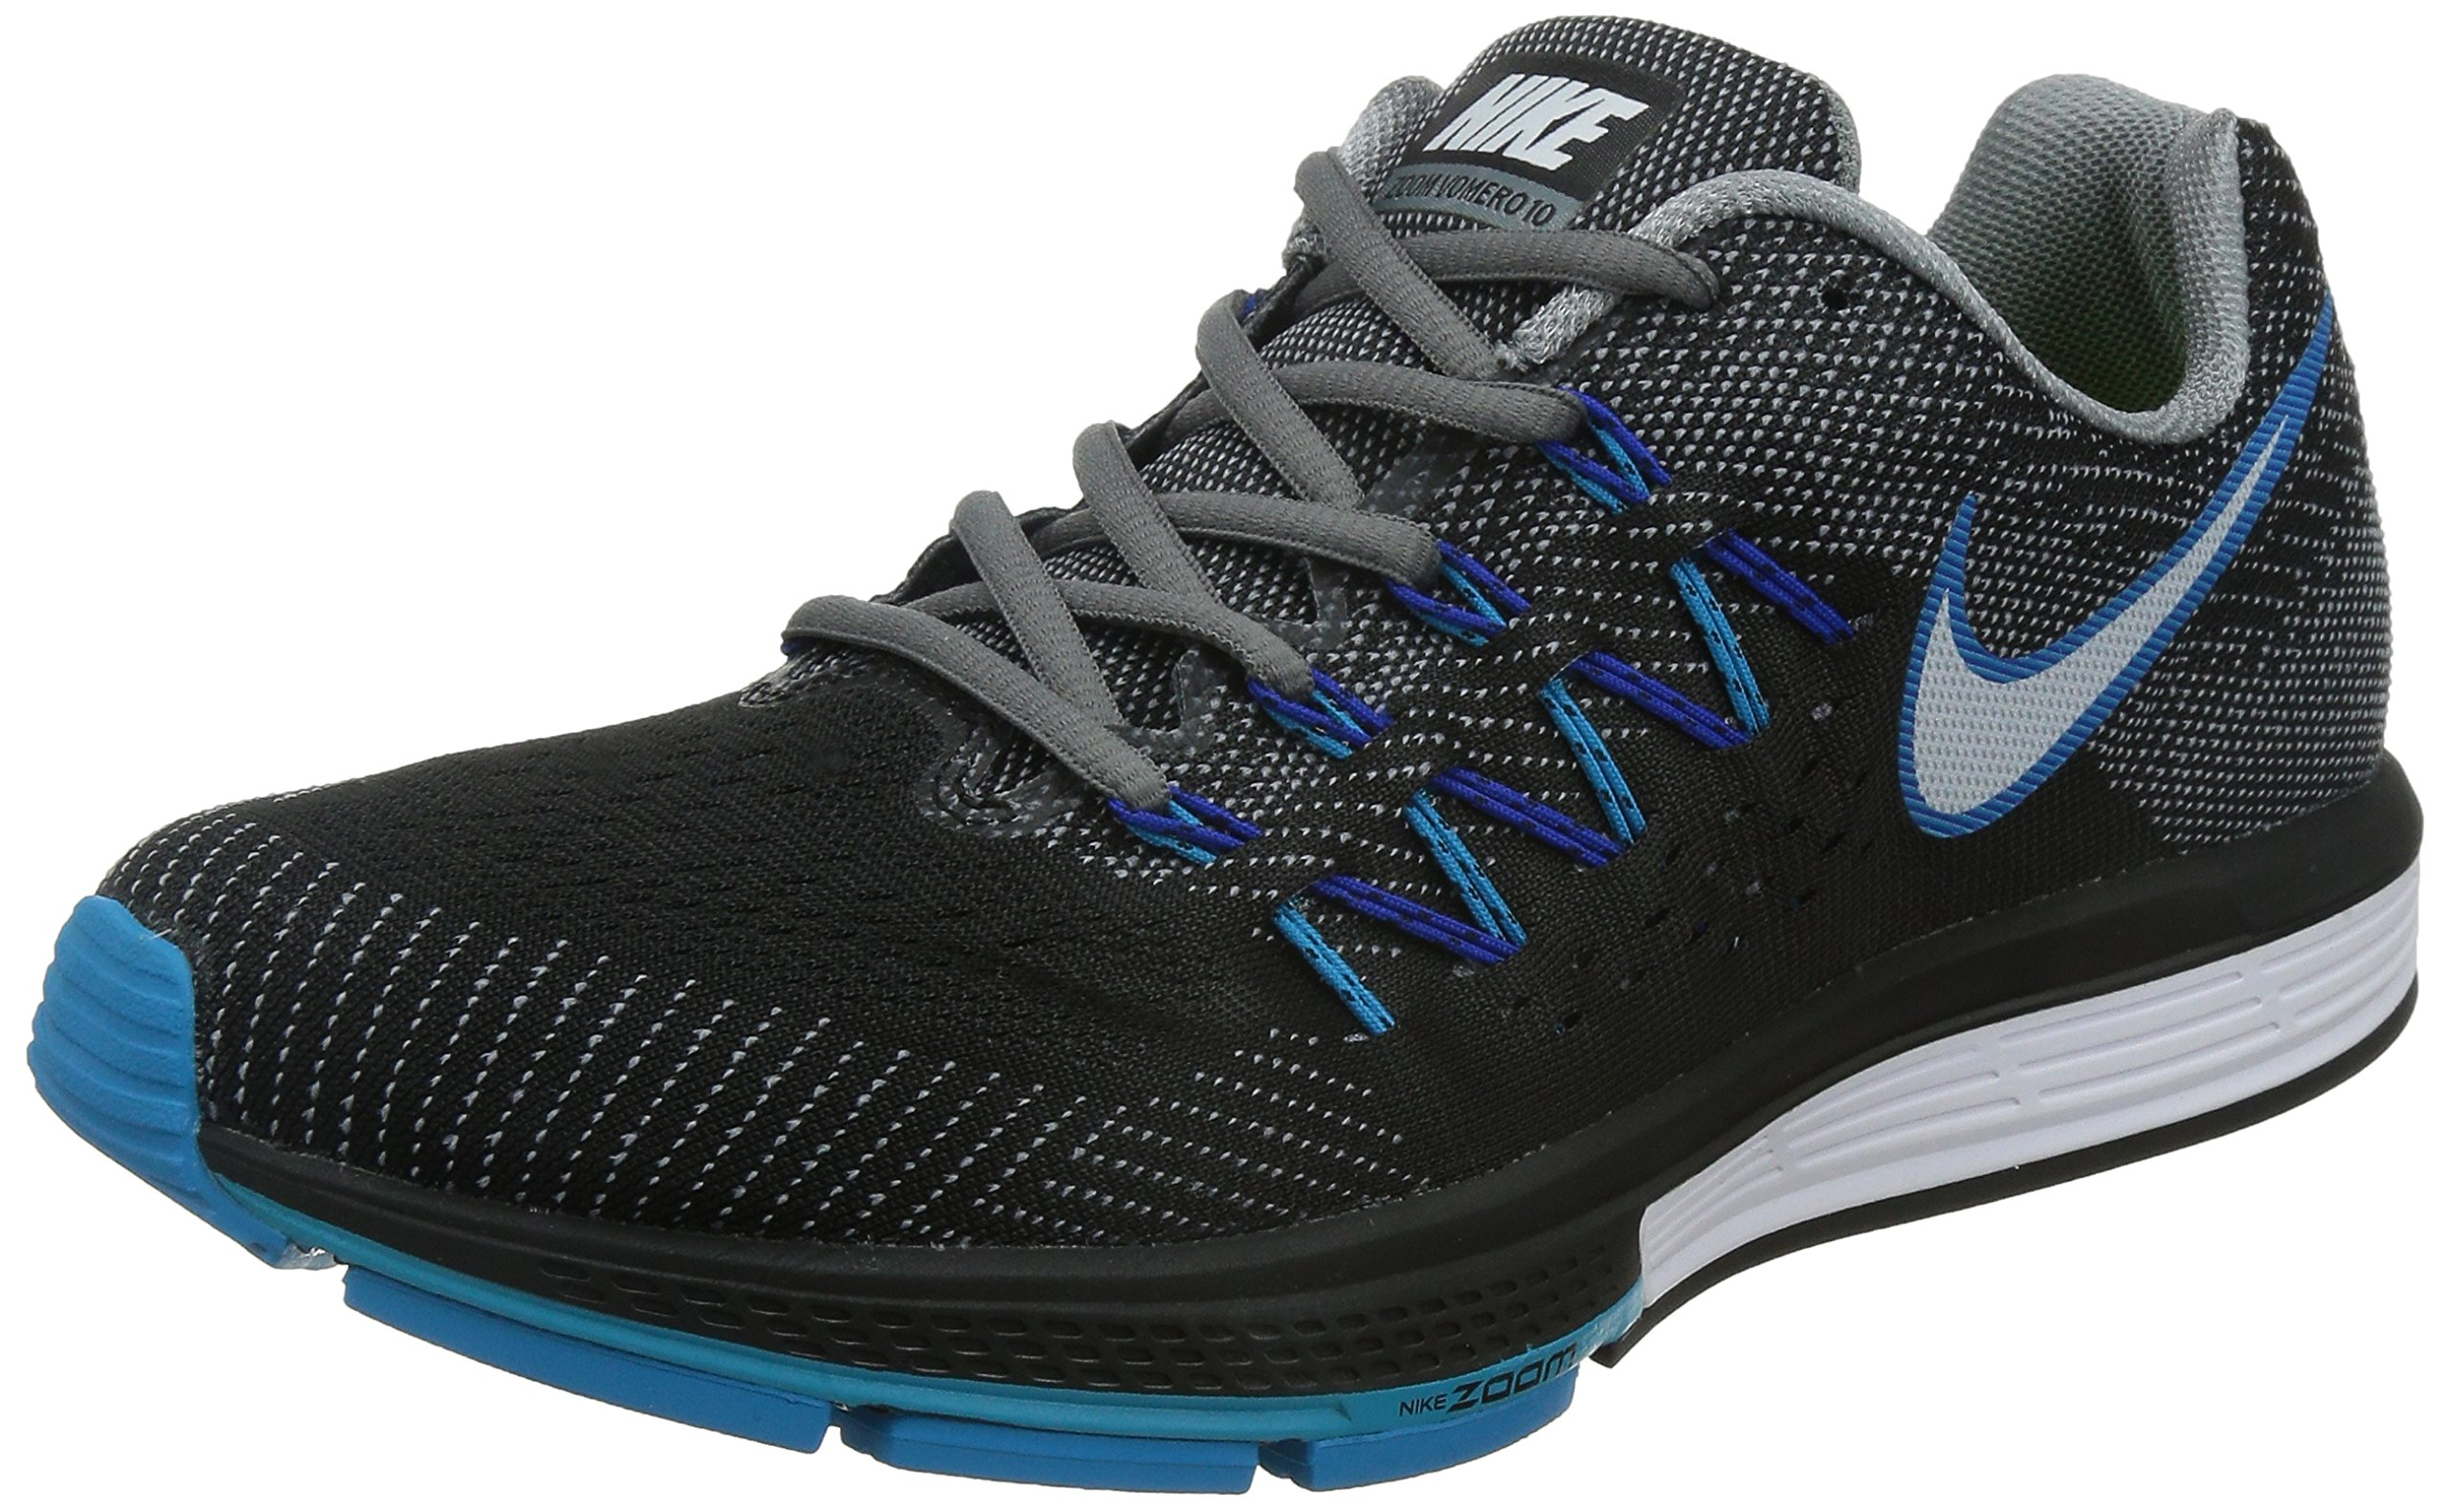 7f86ad35309d8 Galleon - Nike Air Zoom Vomero 10 Mens Running Shoes Cool Grey   White    Black   Bl Lgn 9 D(M) US